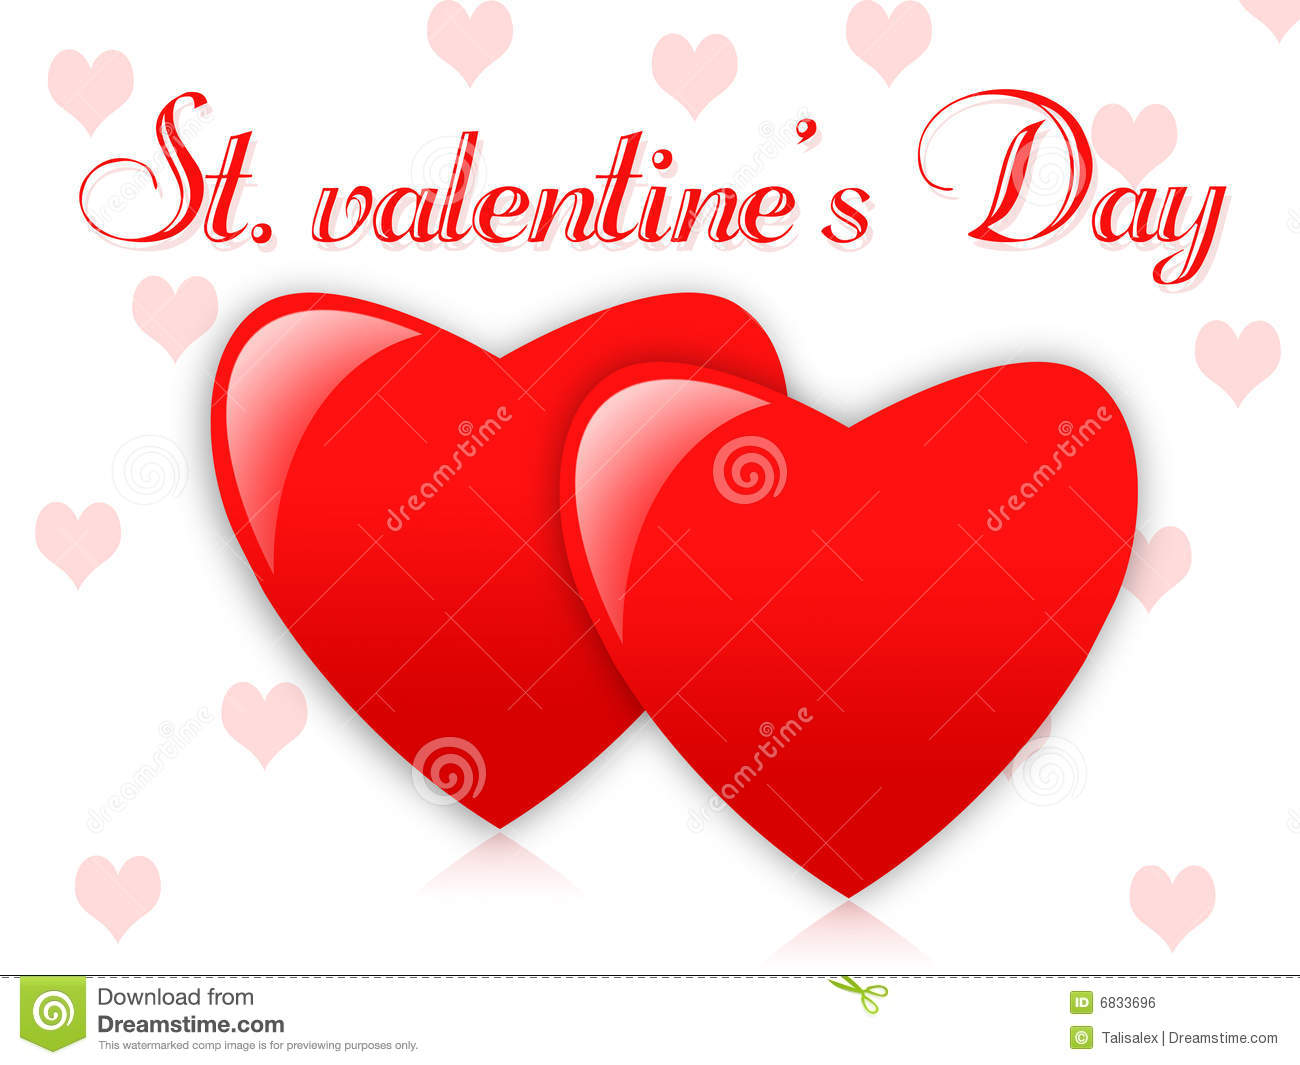 st valentines day royalty free stock image - San Valentine Day